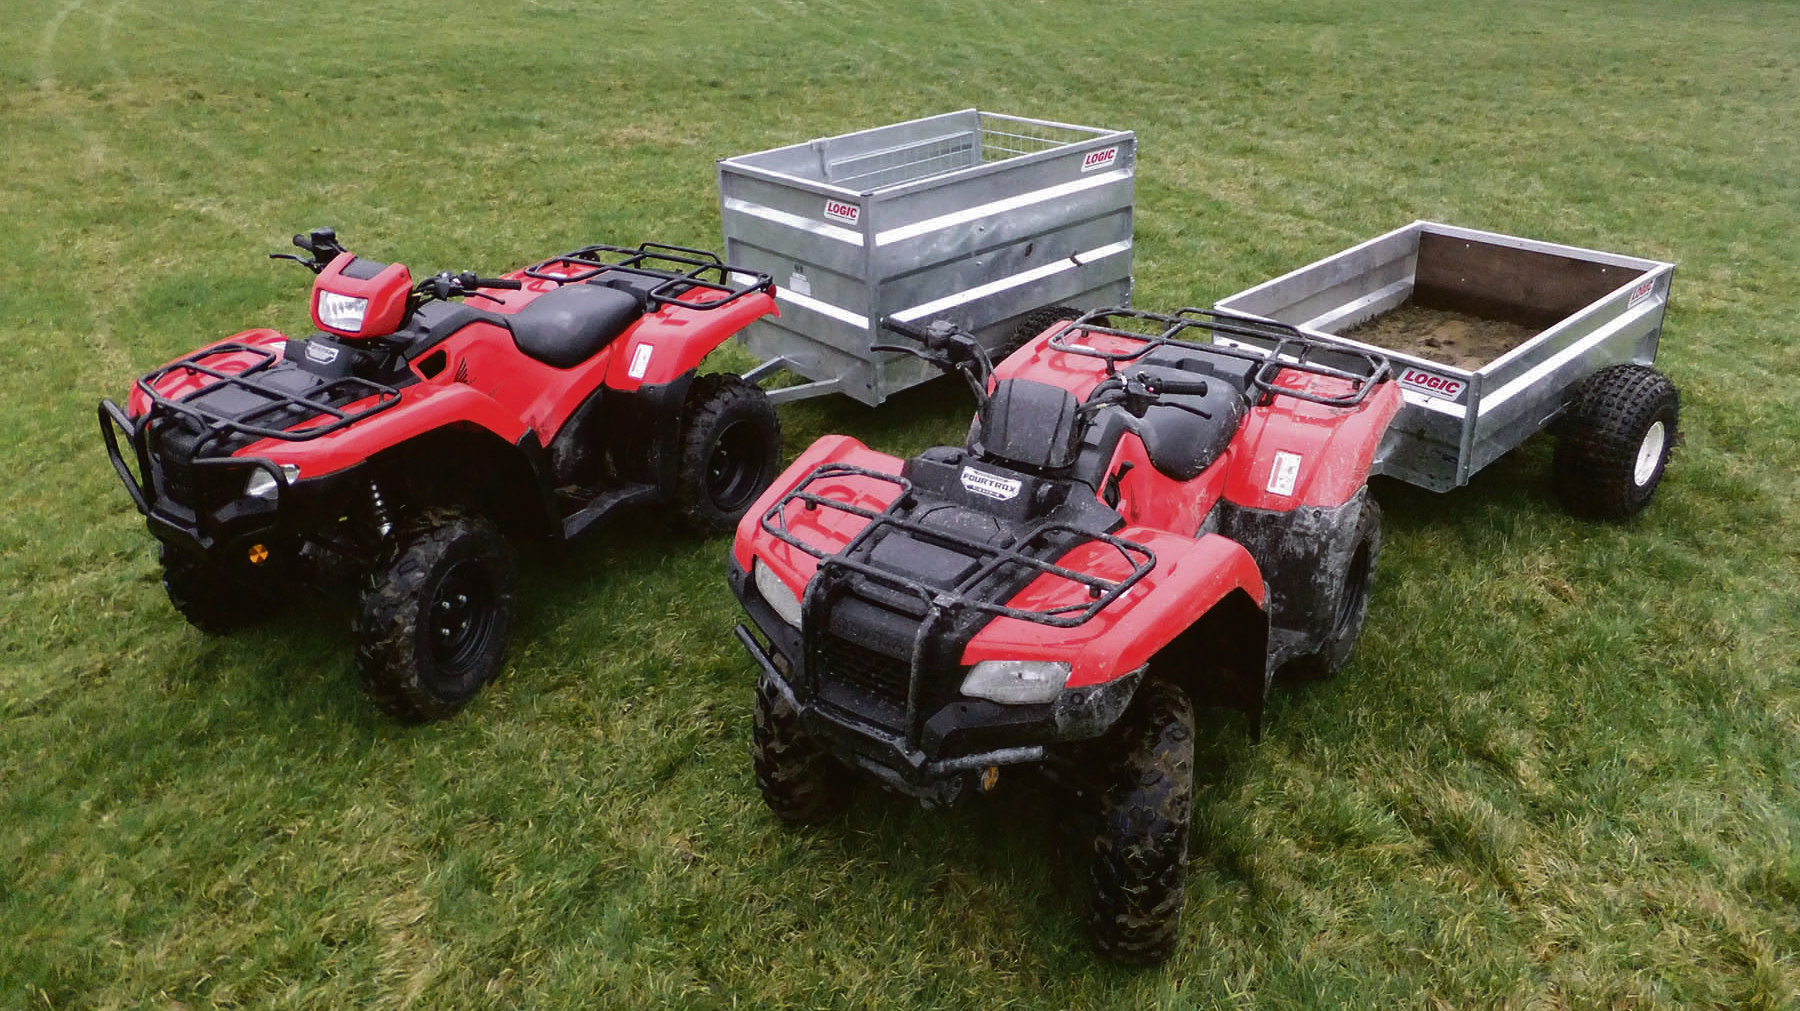 On test: Honda's latest TRX 420 and 500 ATV models